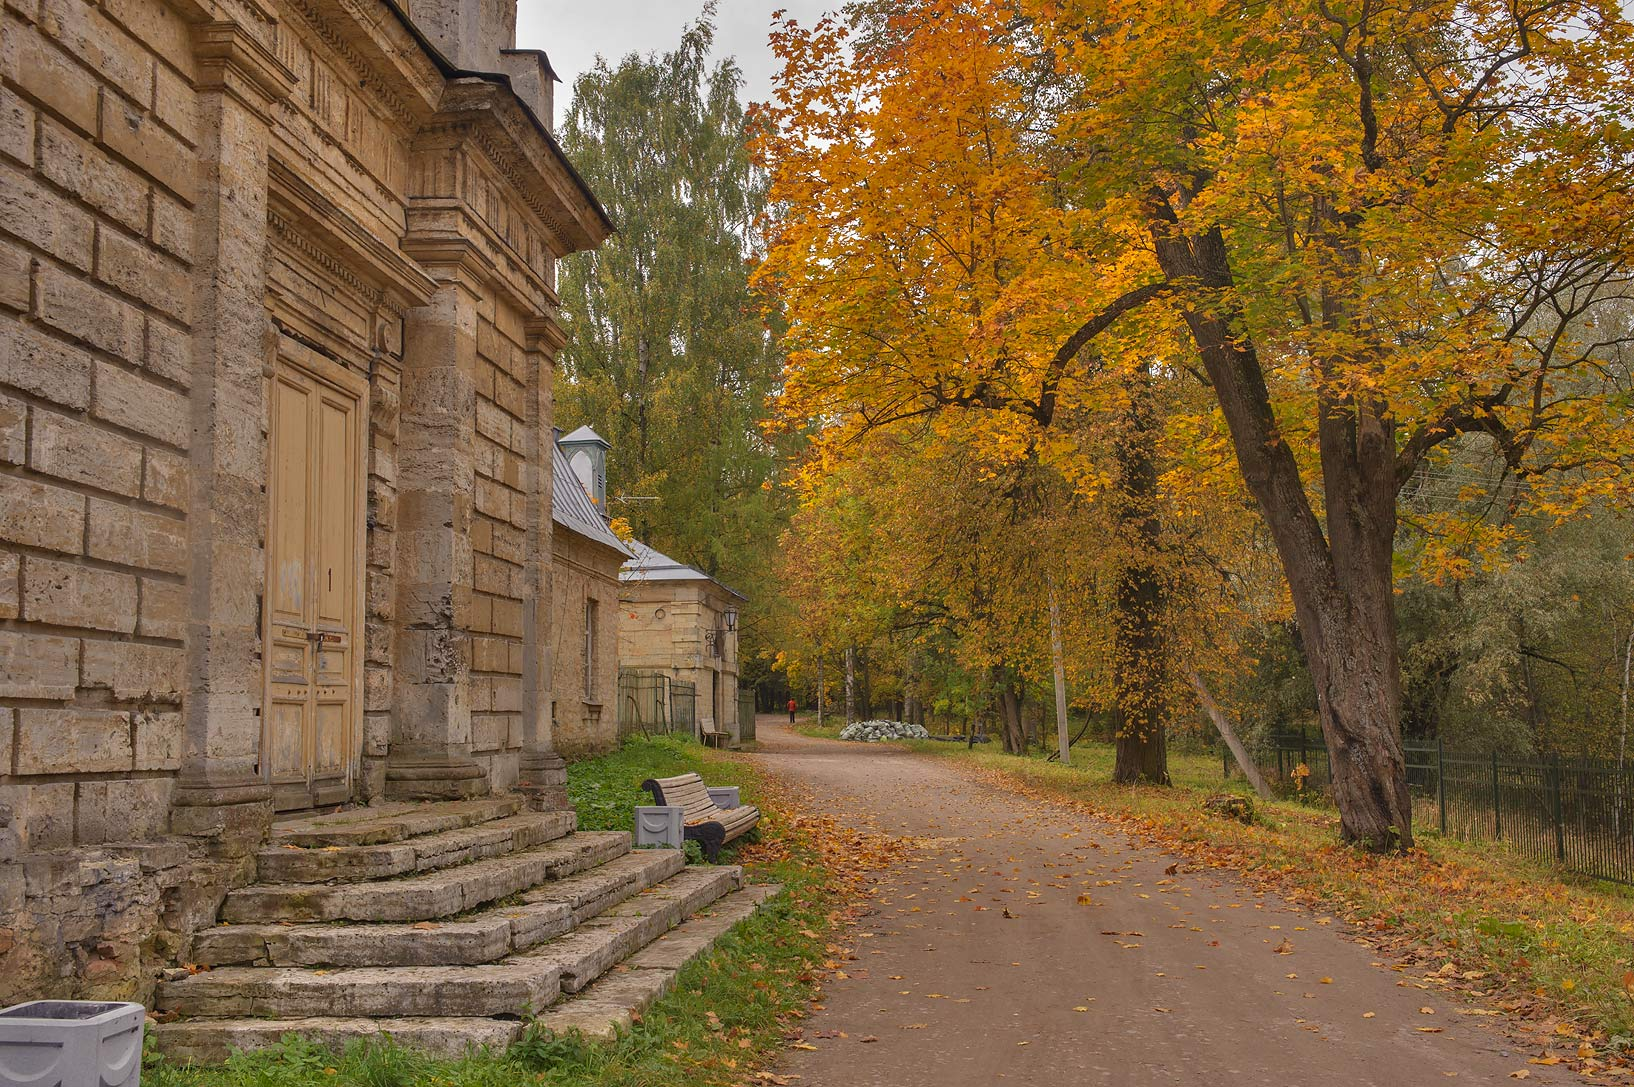 The Farm (Ferma) in Gatchina, a suburb of St.Petersburg. Russia